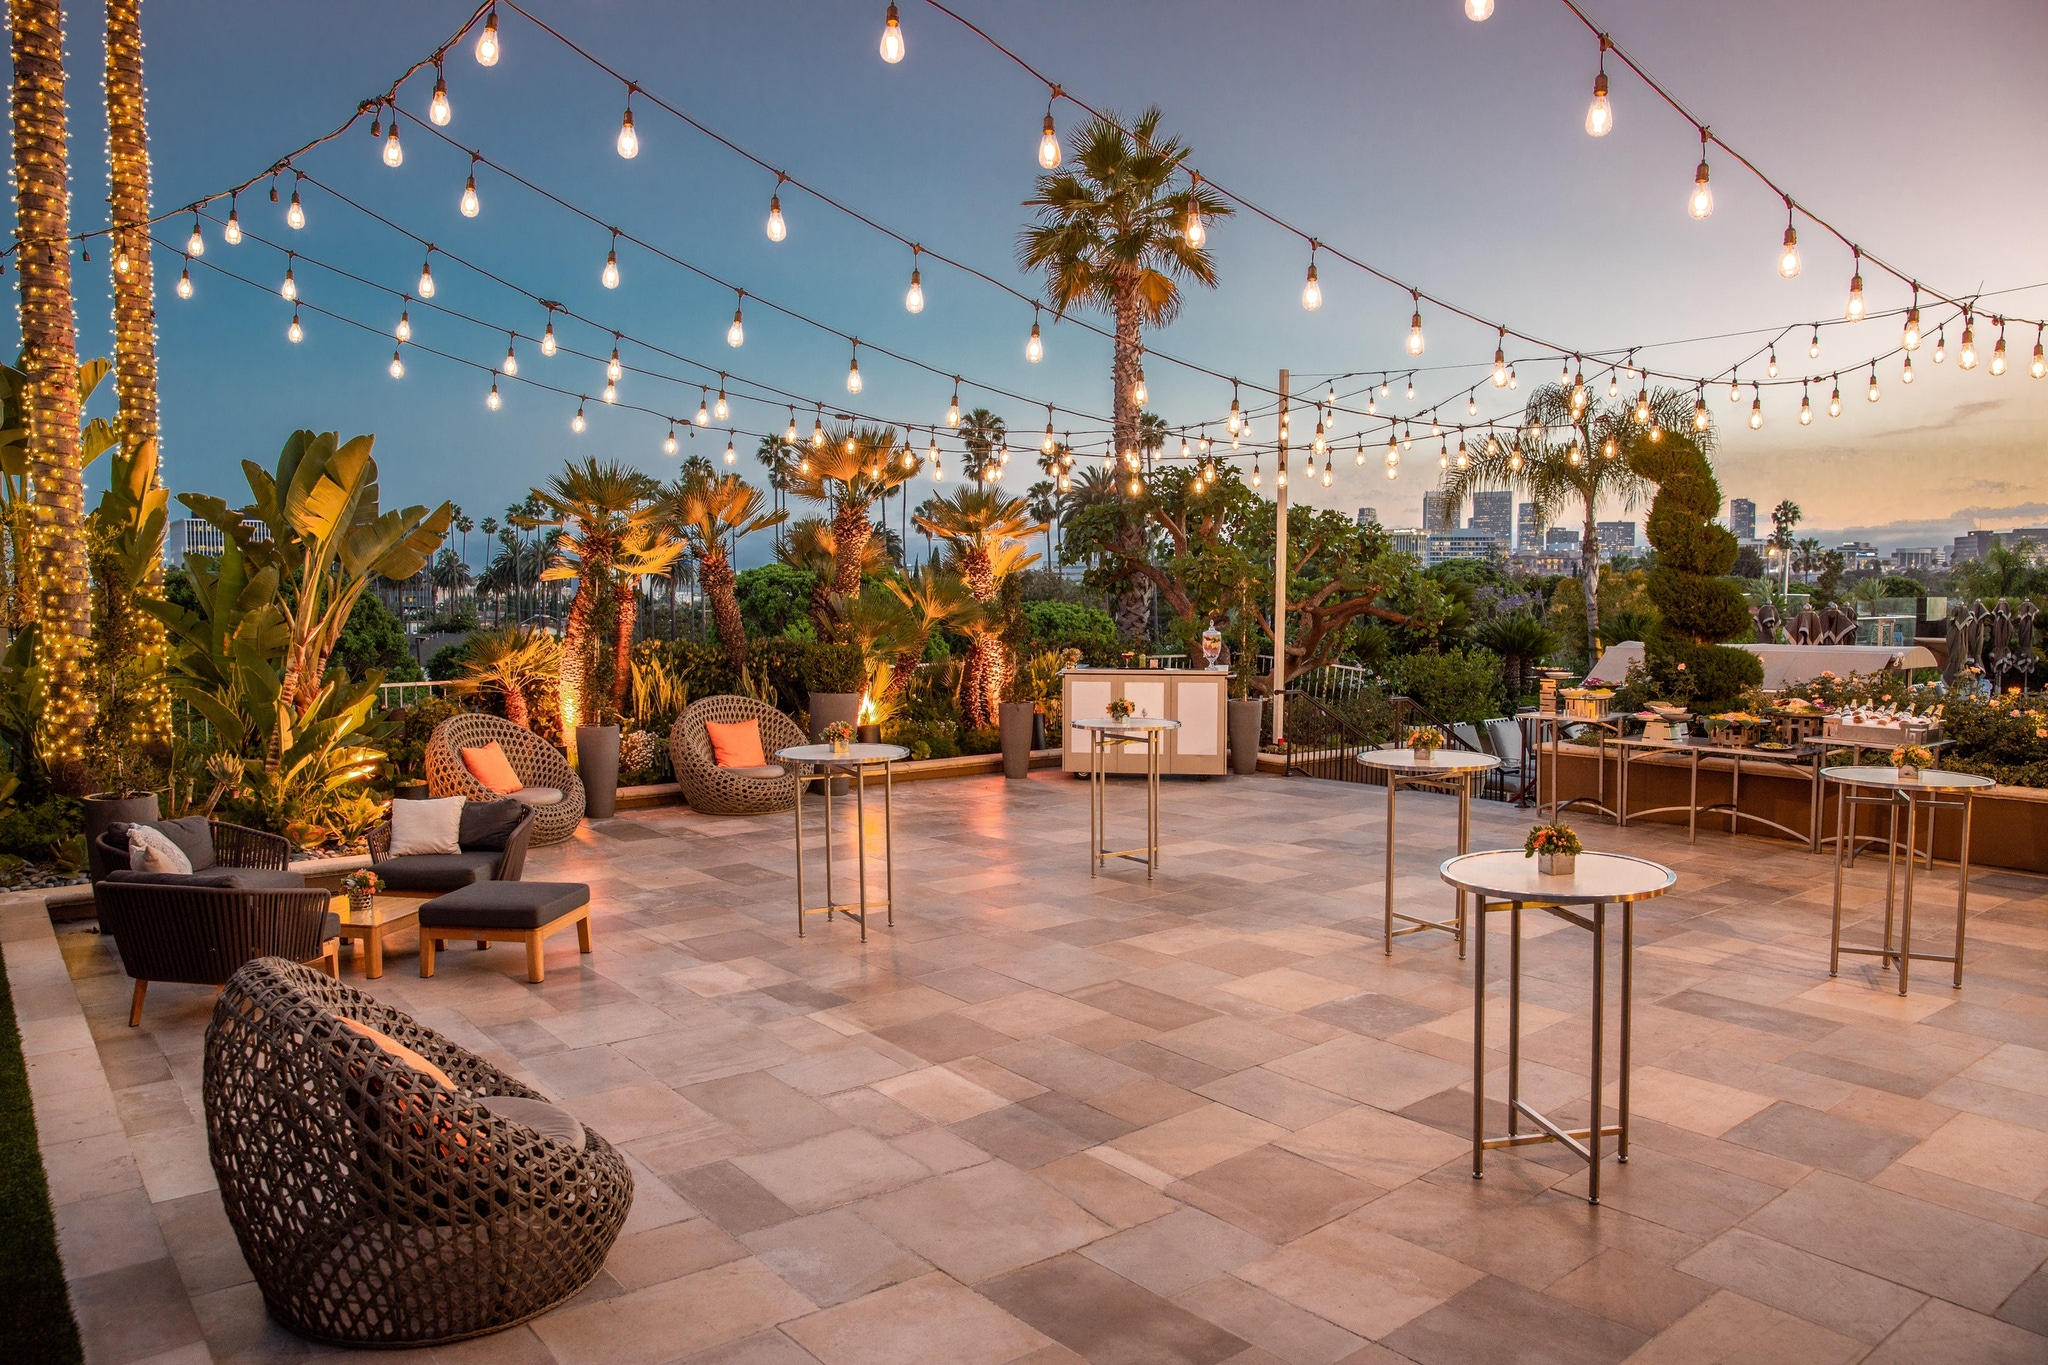 The Deck at Four Seasons Hotel at Beverly Hills